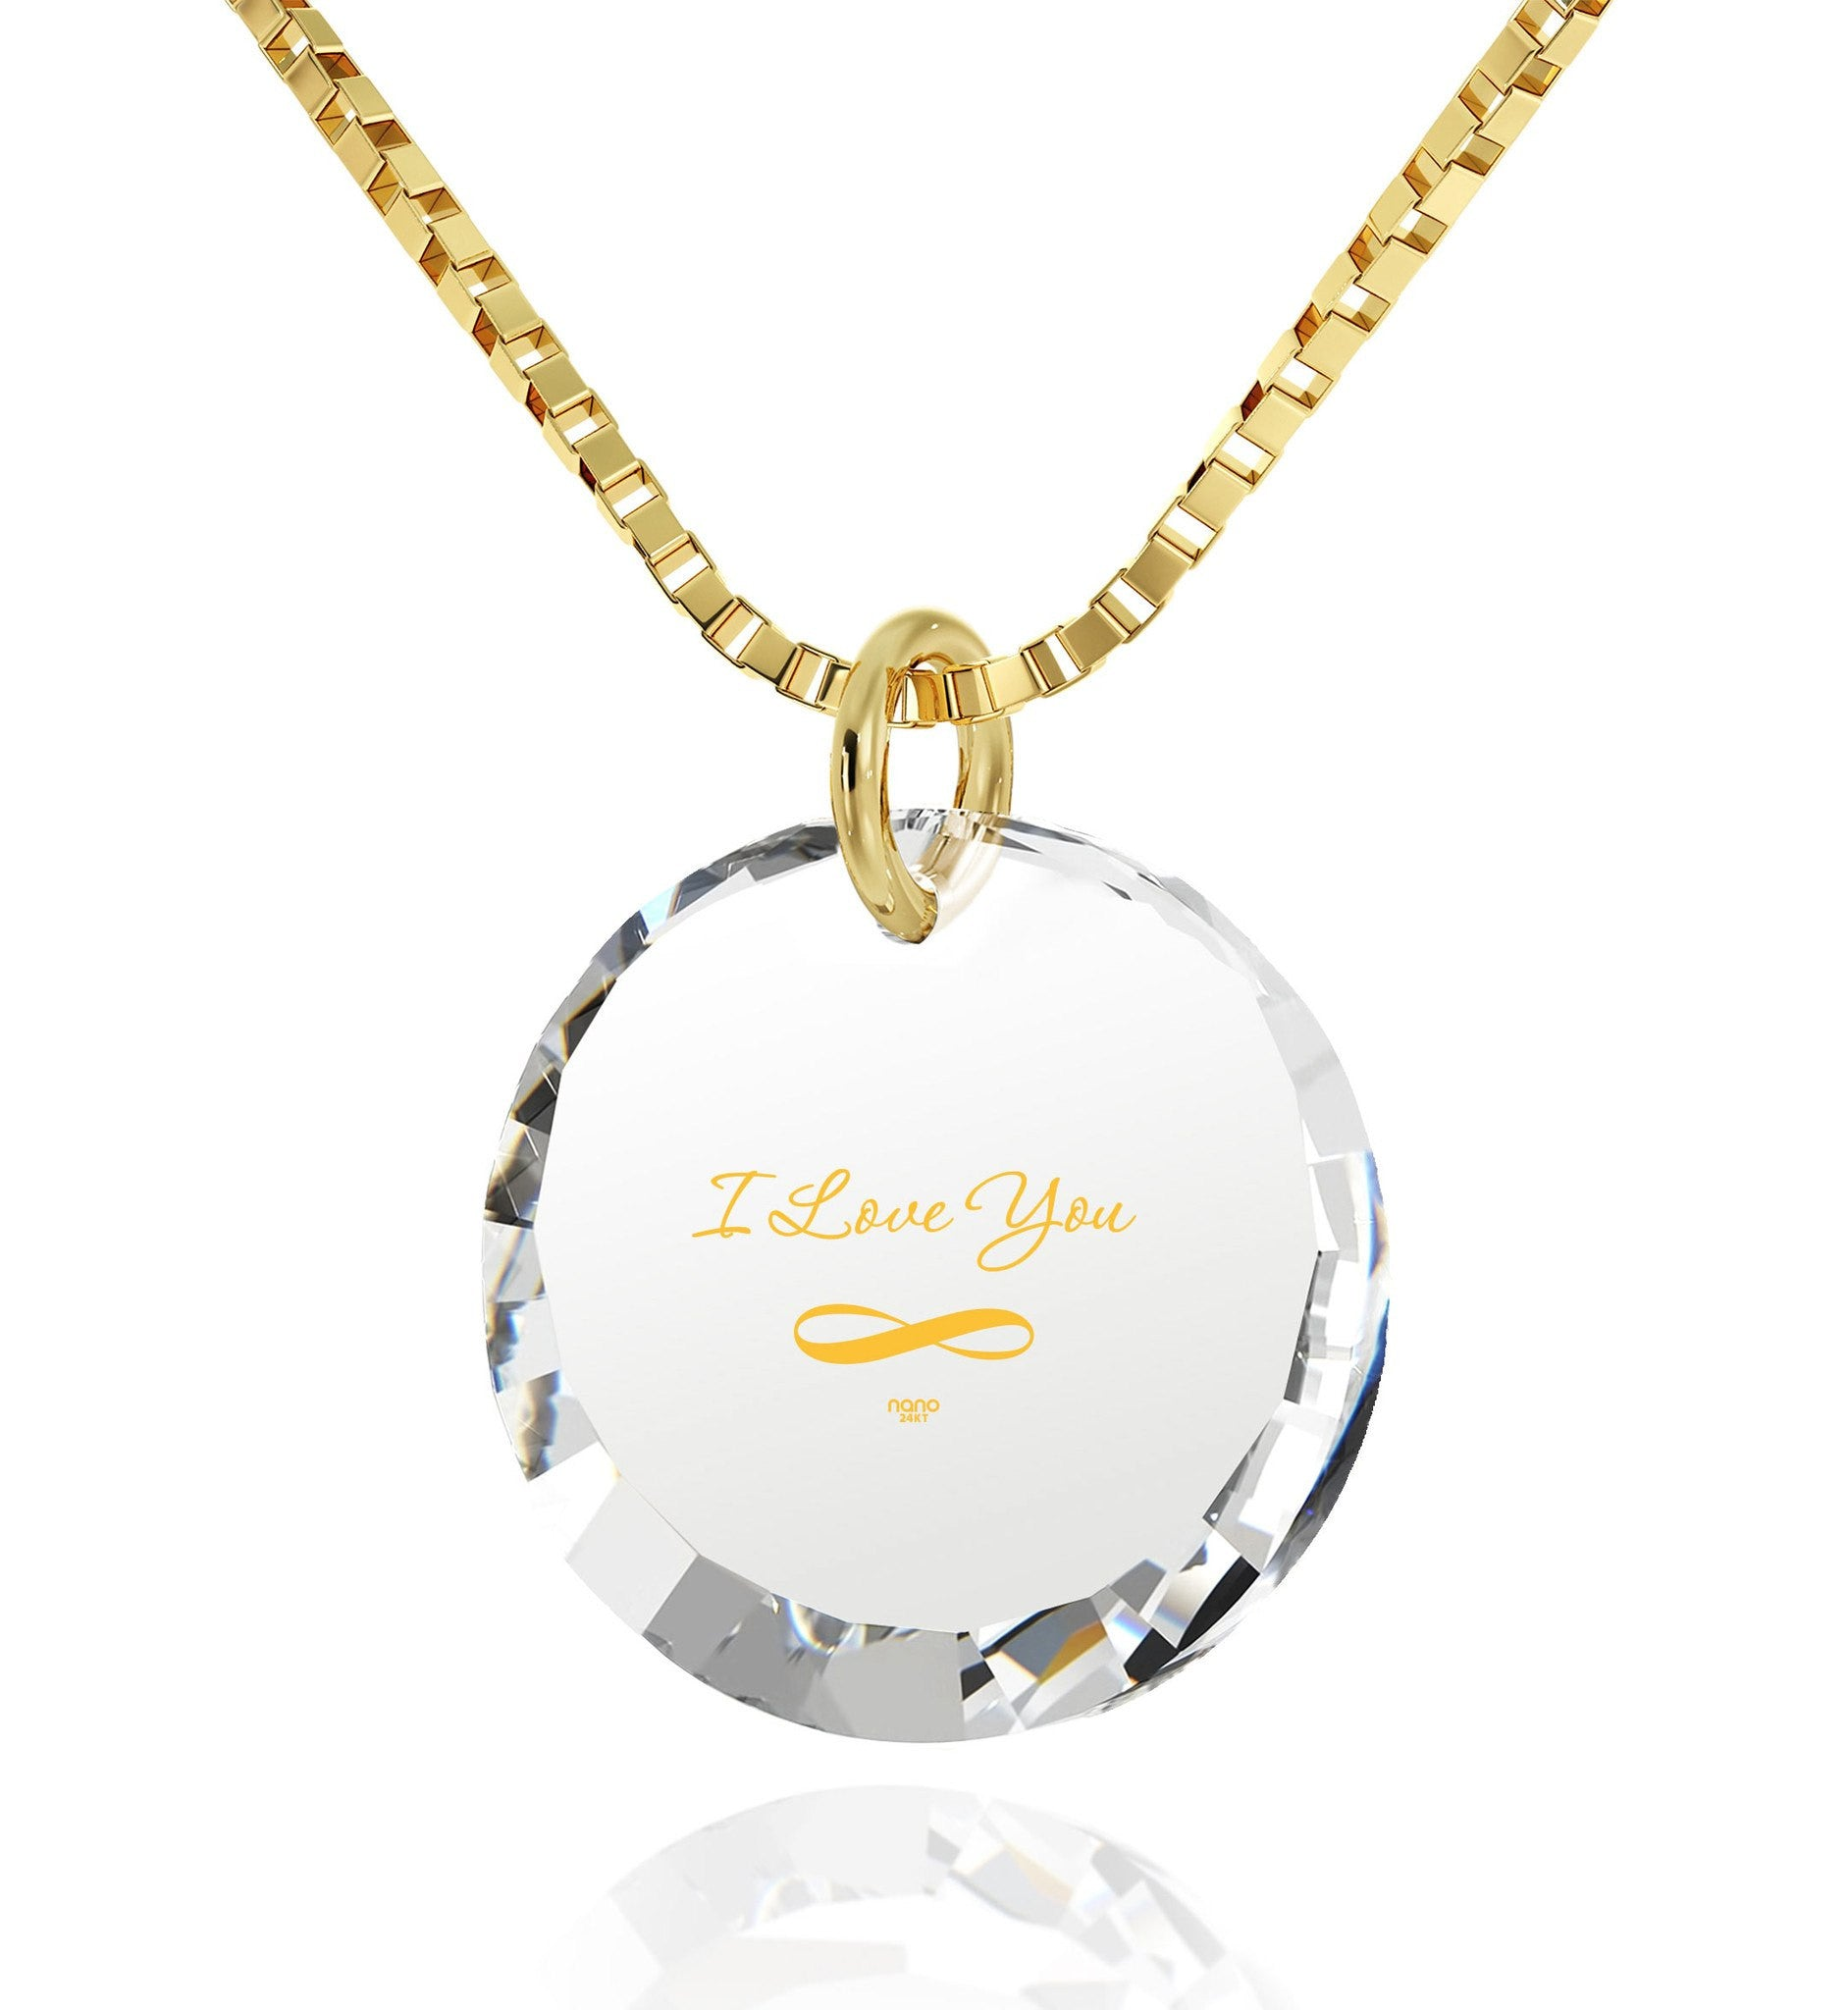 "Necklaces for Your Girlfriend,""I Love You Infinity"" 24k Imprint, Pure Romance Products, Nano Jewelry"